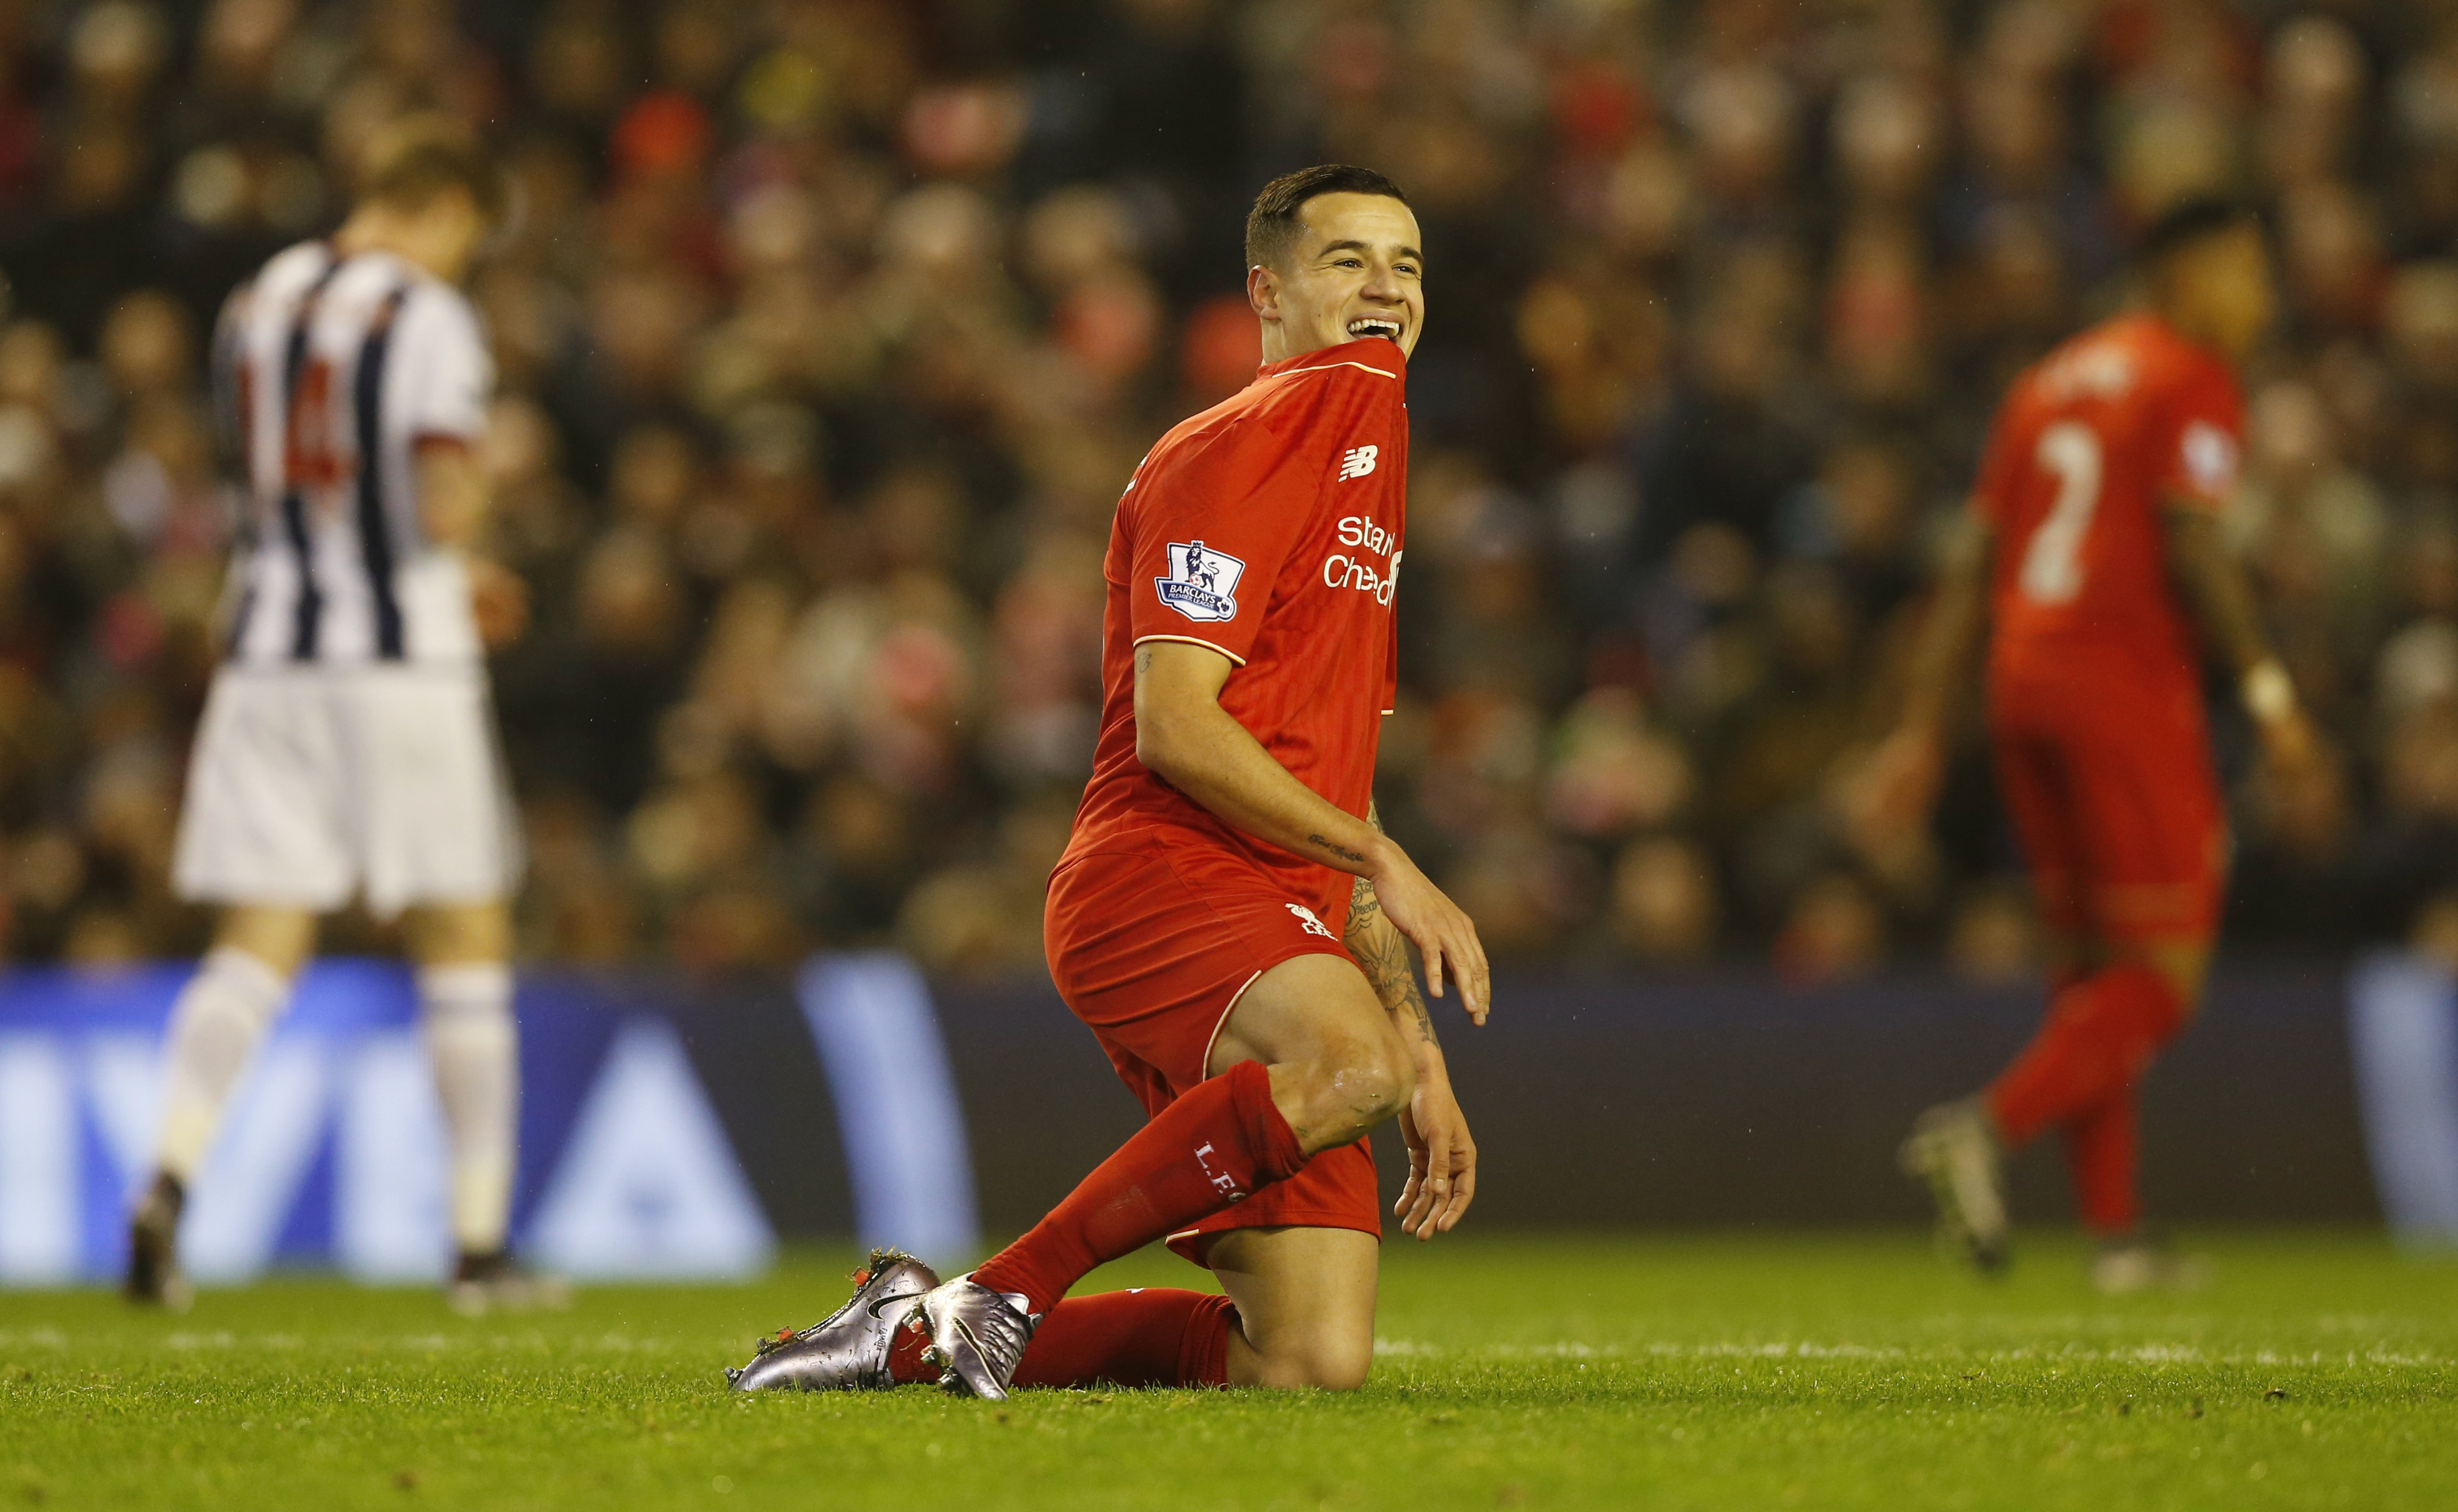 Liverpool's Philippe Coutinho reacts during Barclays Premier League match against West Bromwich Albion at Anfield on December 13, 2015. Photo: Reuters